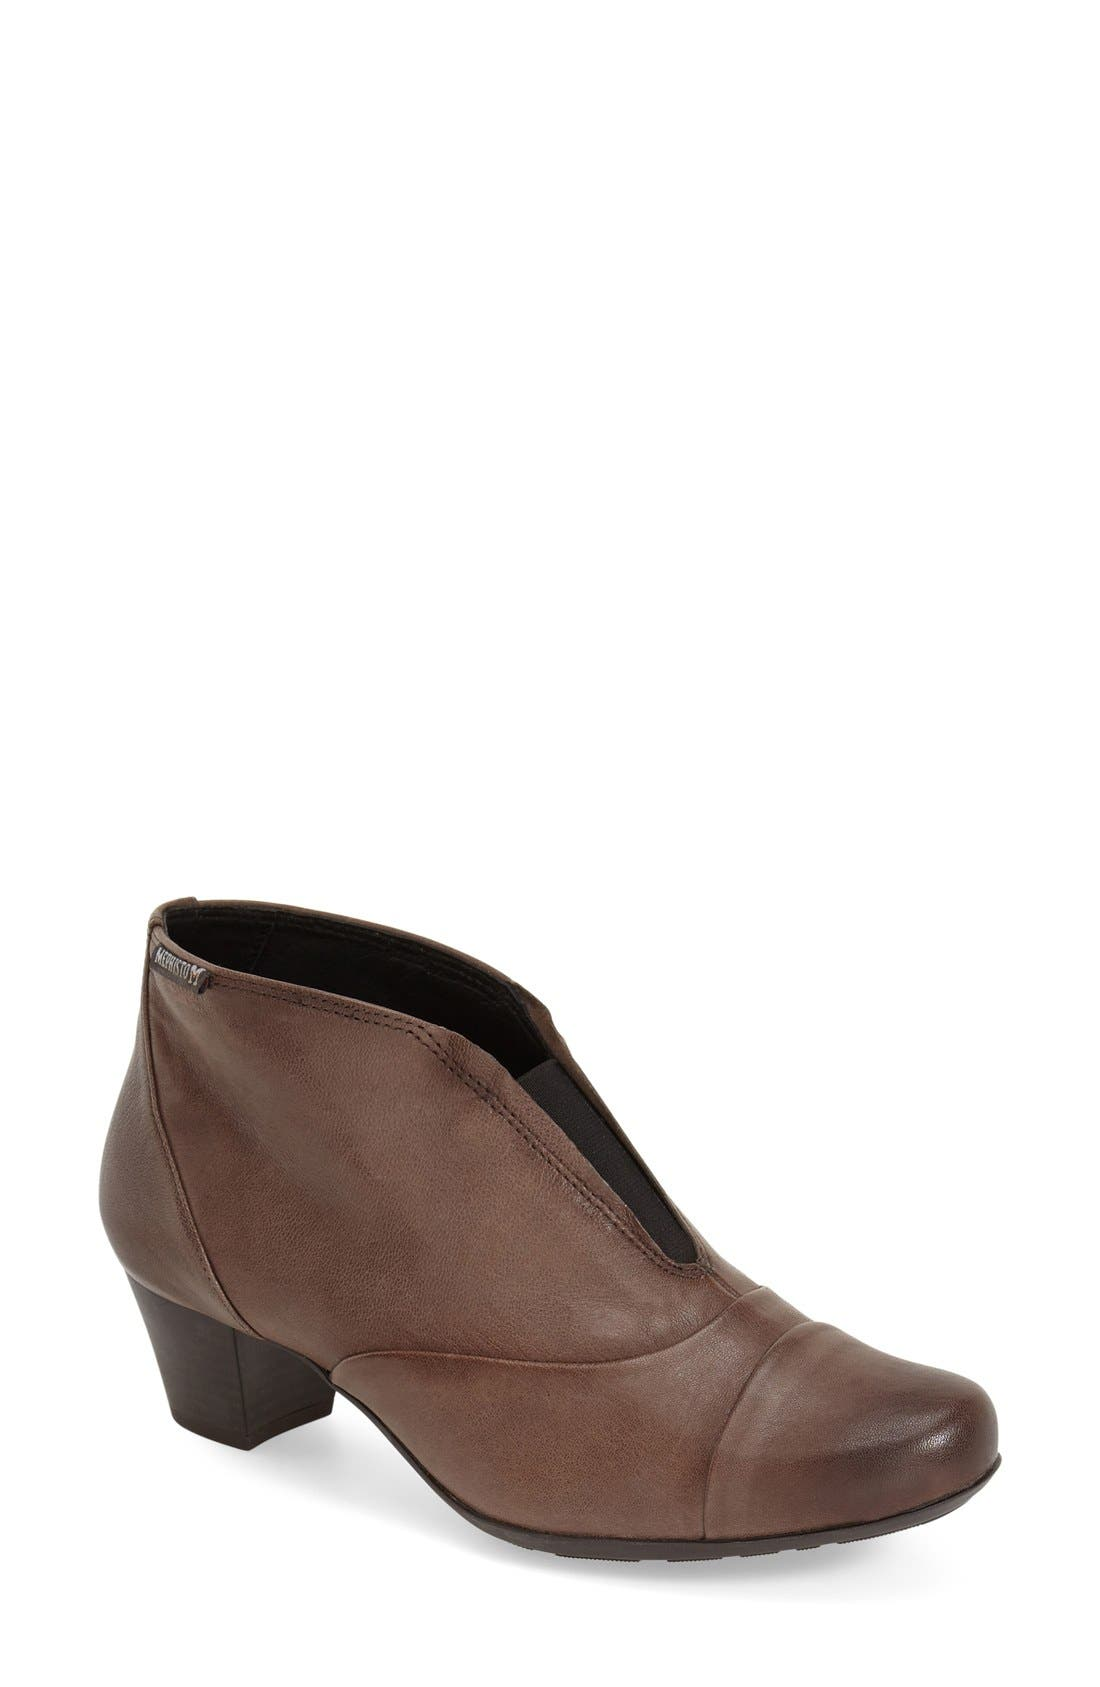 'Maddie' Bootie,                             Main thumbnail 1, color,                             250